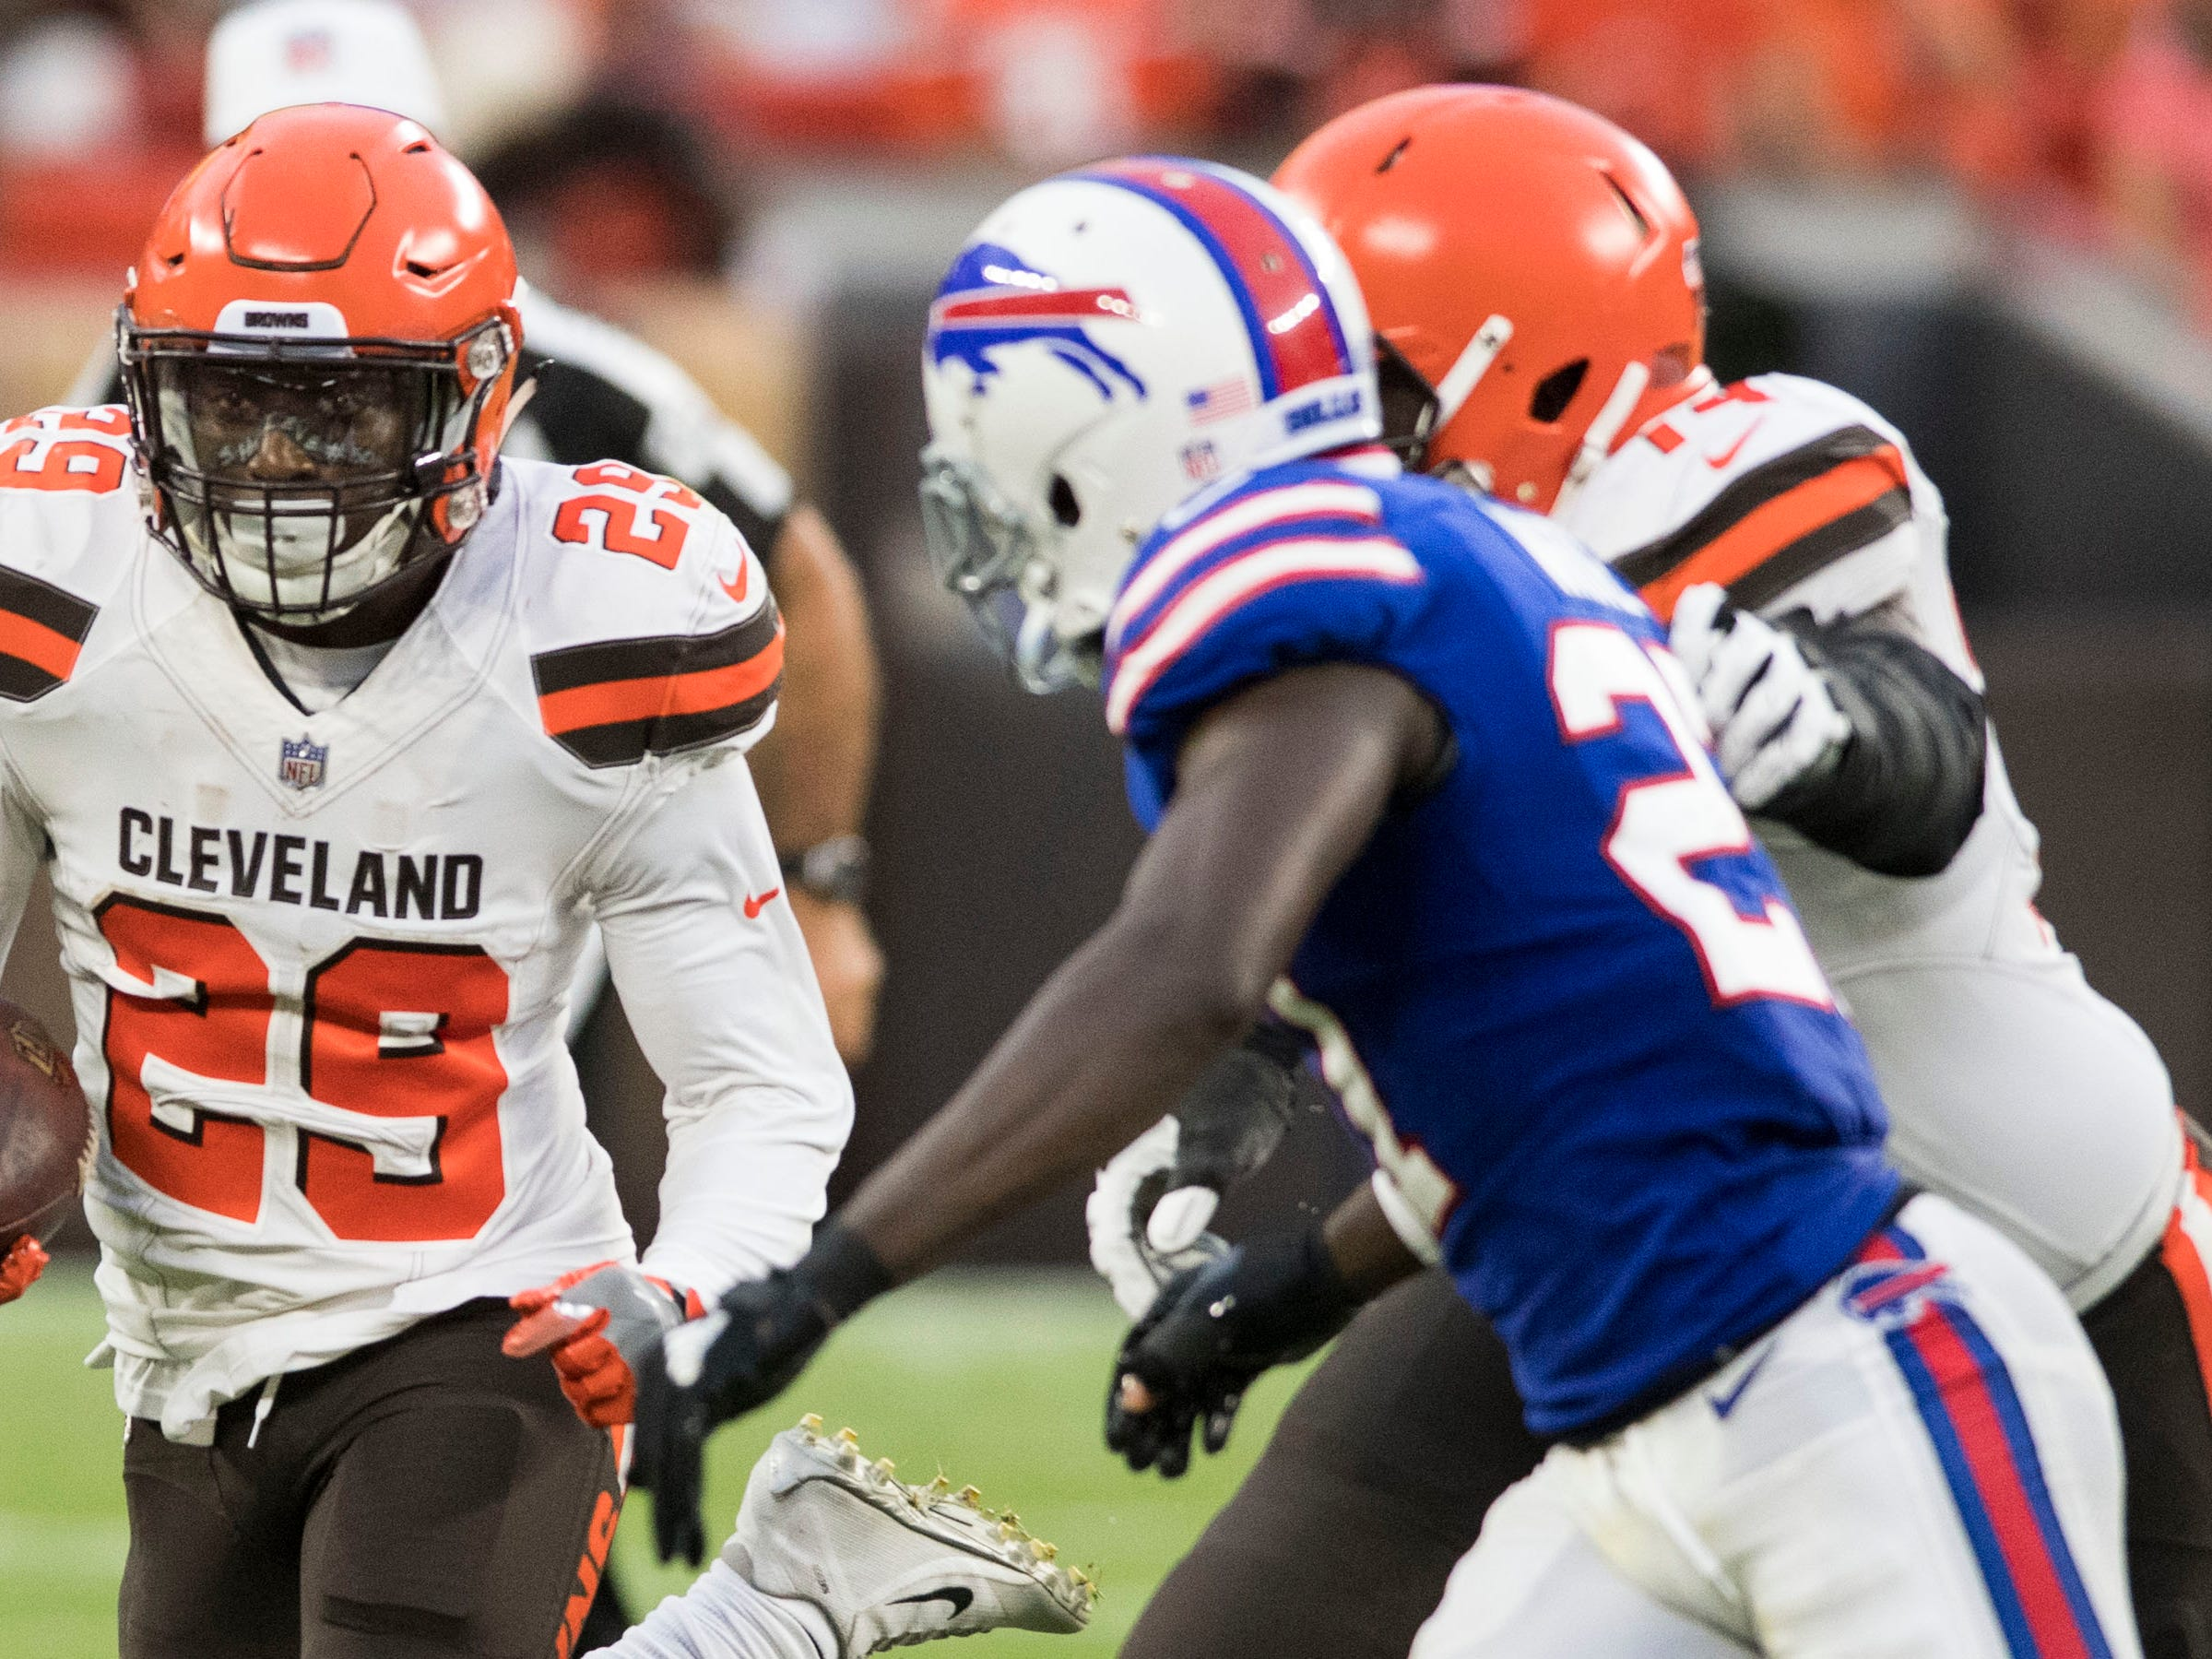 Aug 17, 2018; Cleveland, OH, USA; Cleveland Browns running back Duke Johnson (29) runs with the ball during the first half against the Buffalo Bills at FirstEnergy Stadium. Mandatory Credit: Ken Blaze-USA TODAY Sports